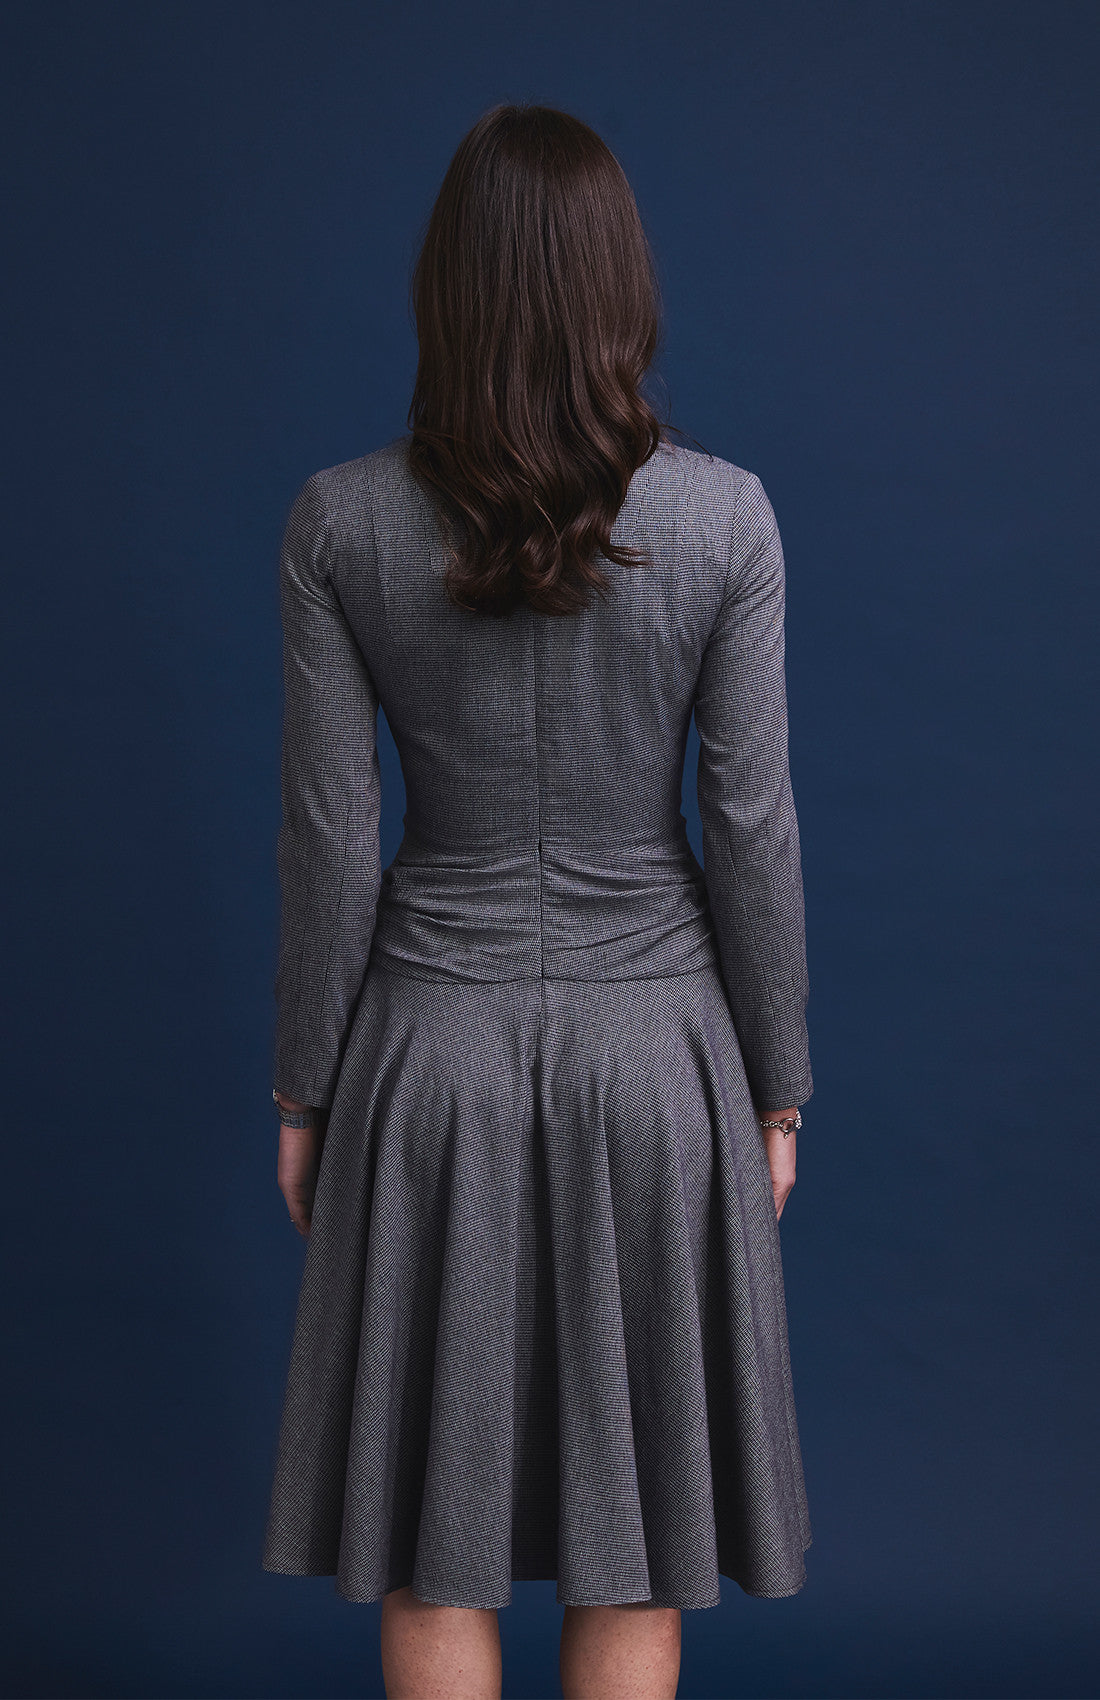 Herringbone fit and flare tailored office dress for work